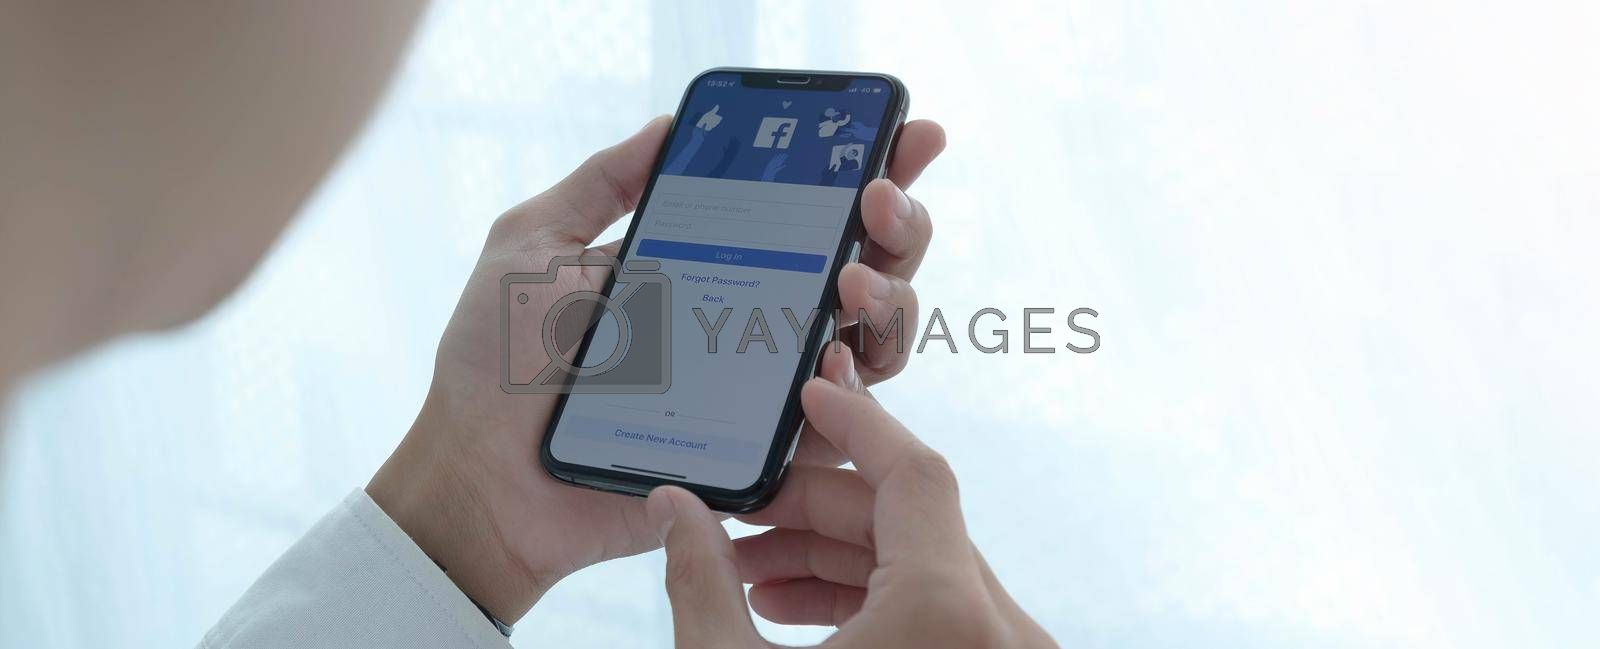 CHIANG MAI, THAILAND, JUL 27, 2020 : Facebook social media app logo on log-in, sign-up registration page on mobile app screen on iPhone smart devices in business person's hand at work.